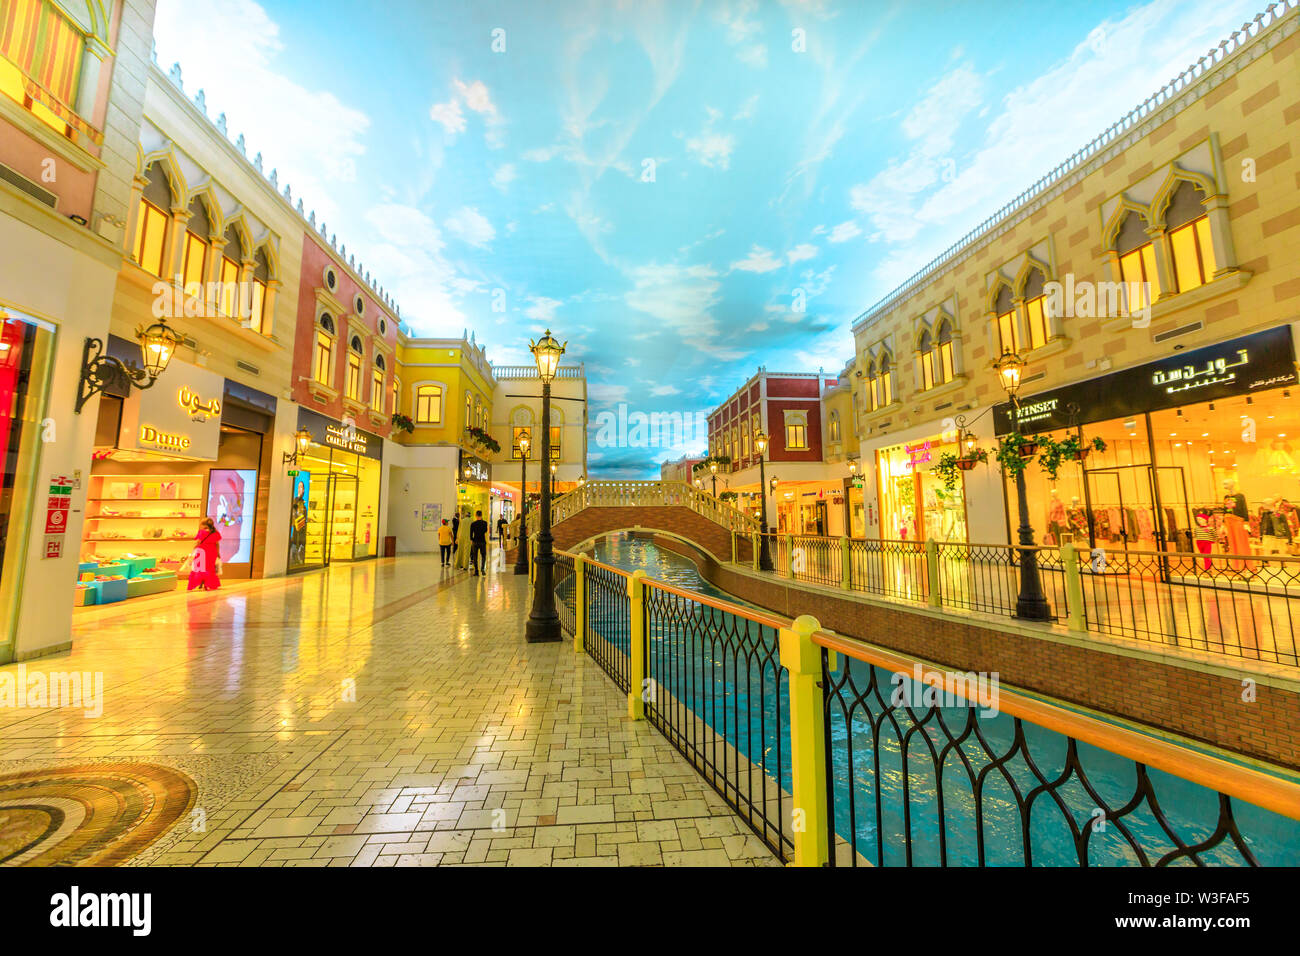 Doha, Qatar - February 21, 2019: venice canal in Villaggio Mall, shopping center in Aspire Zone. Luxury brands, expensive stores and exclusive shops i - Stock Image